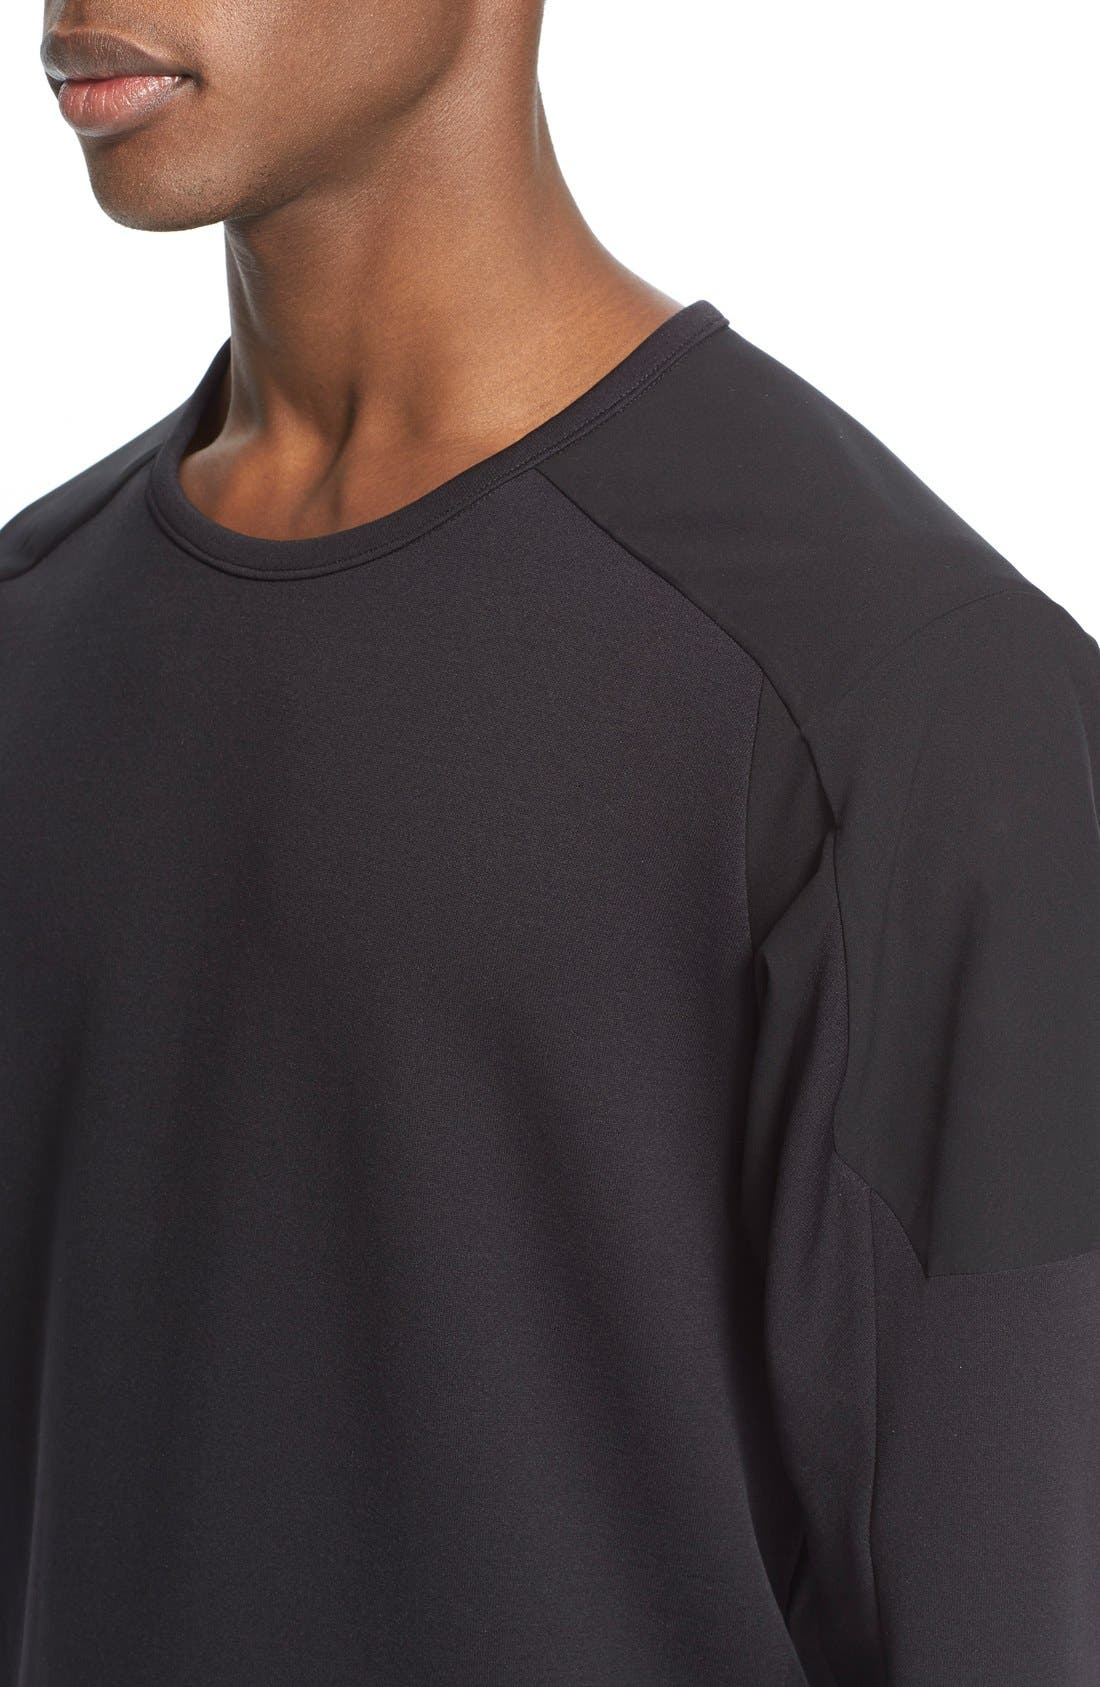 Arc'teryx Veilance 'Graph' Sweater,                             Alternate thumbnail 5, color,